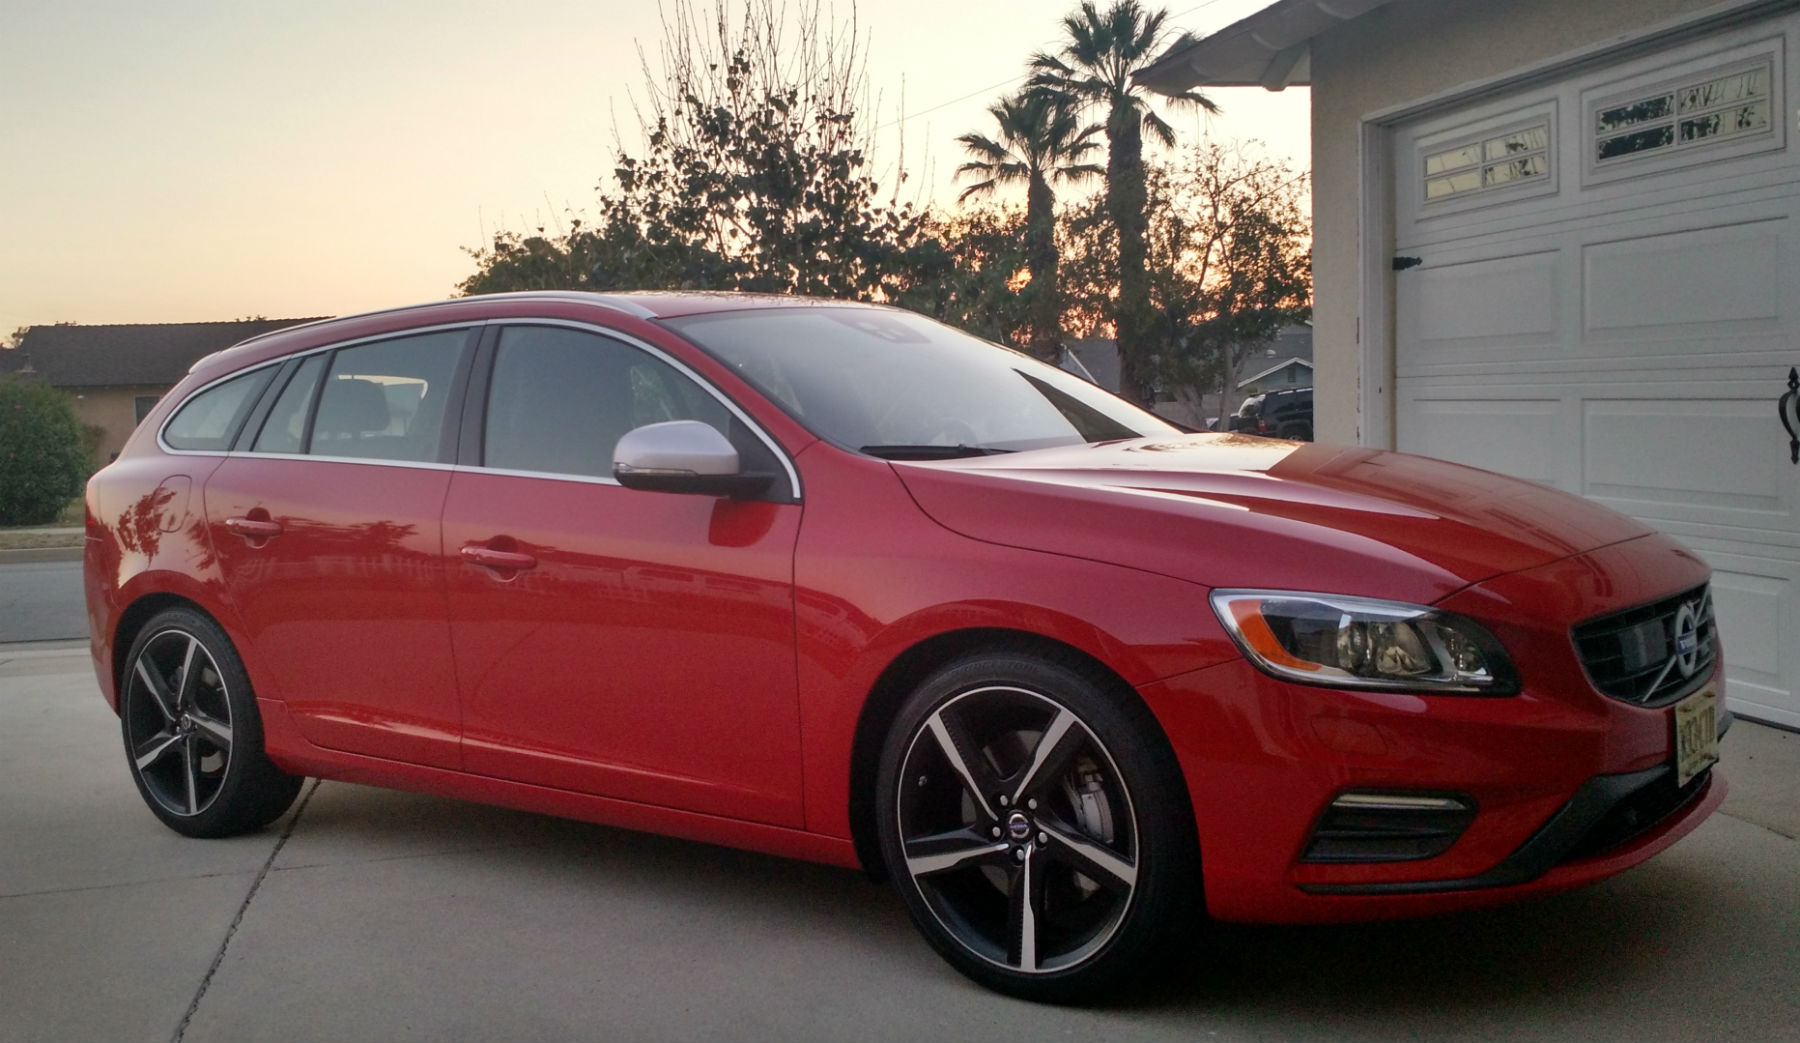 2015 Volvo V60 T6 R-Design Review - The Swedish Manvagn